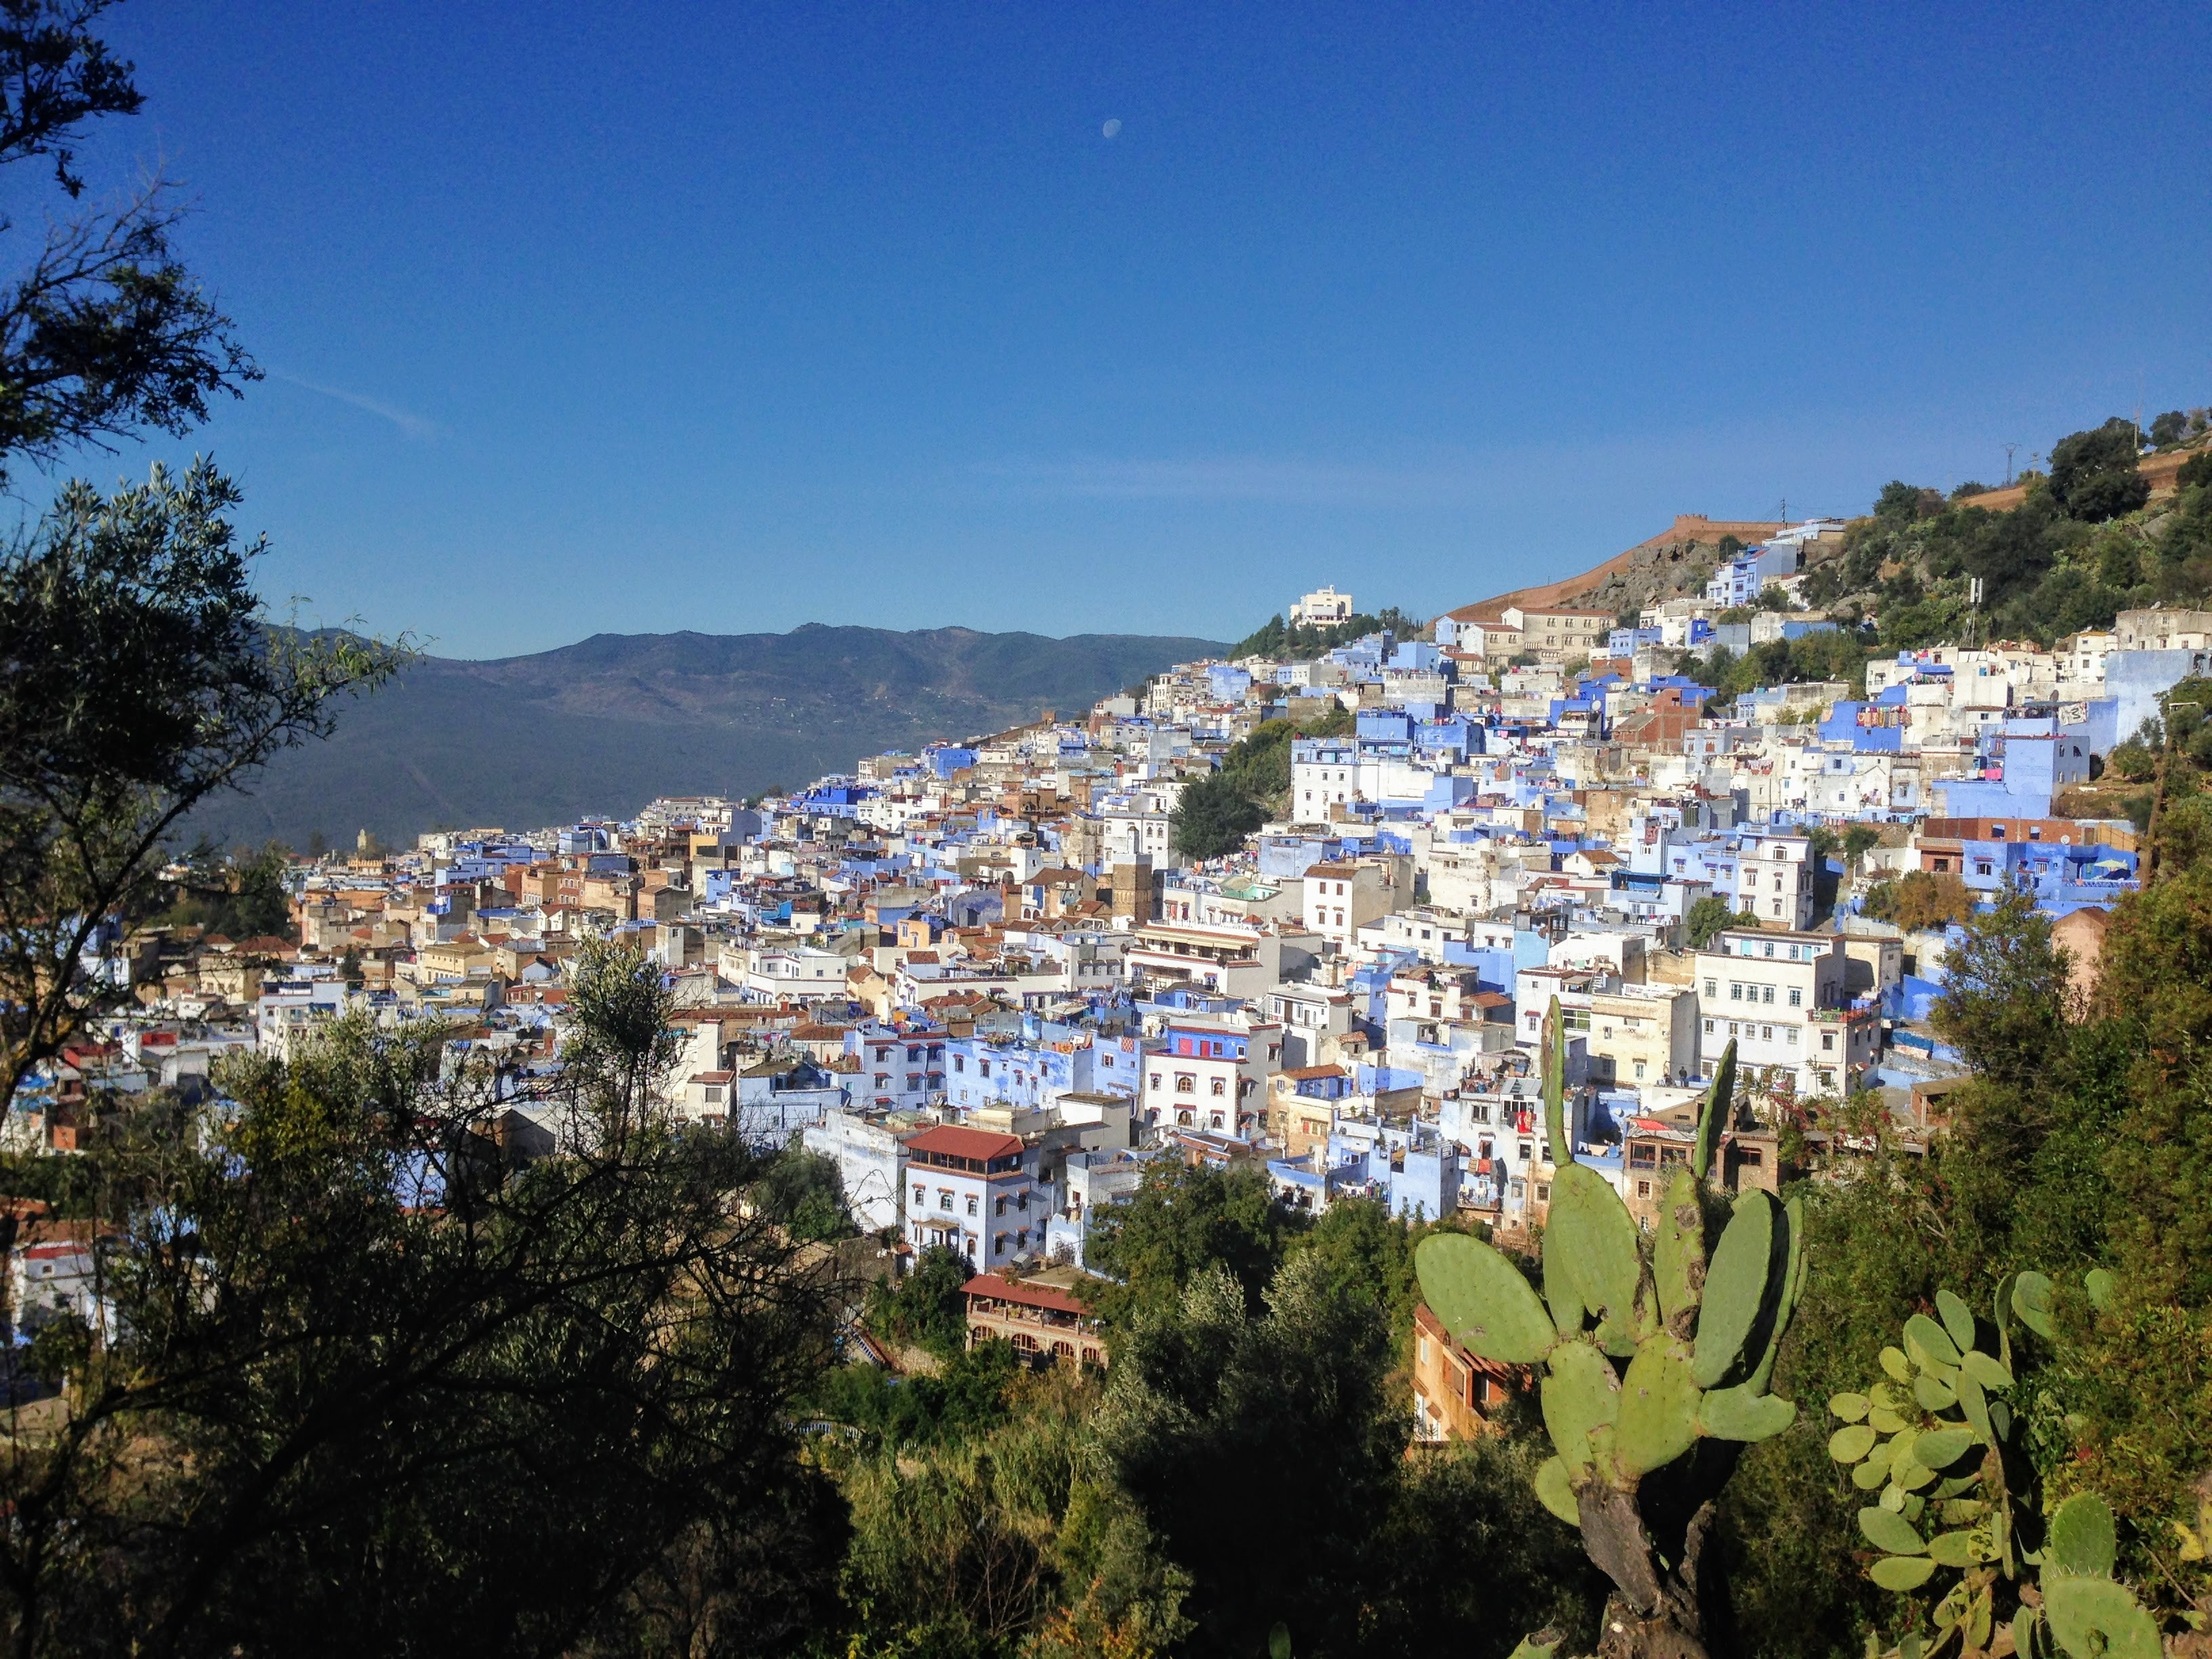 Chefchaouen Morocco blue city blue pearl viewpoint old medina Spanish Mosque